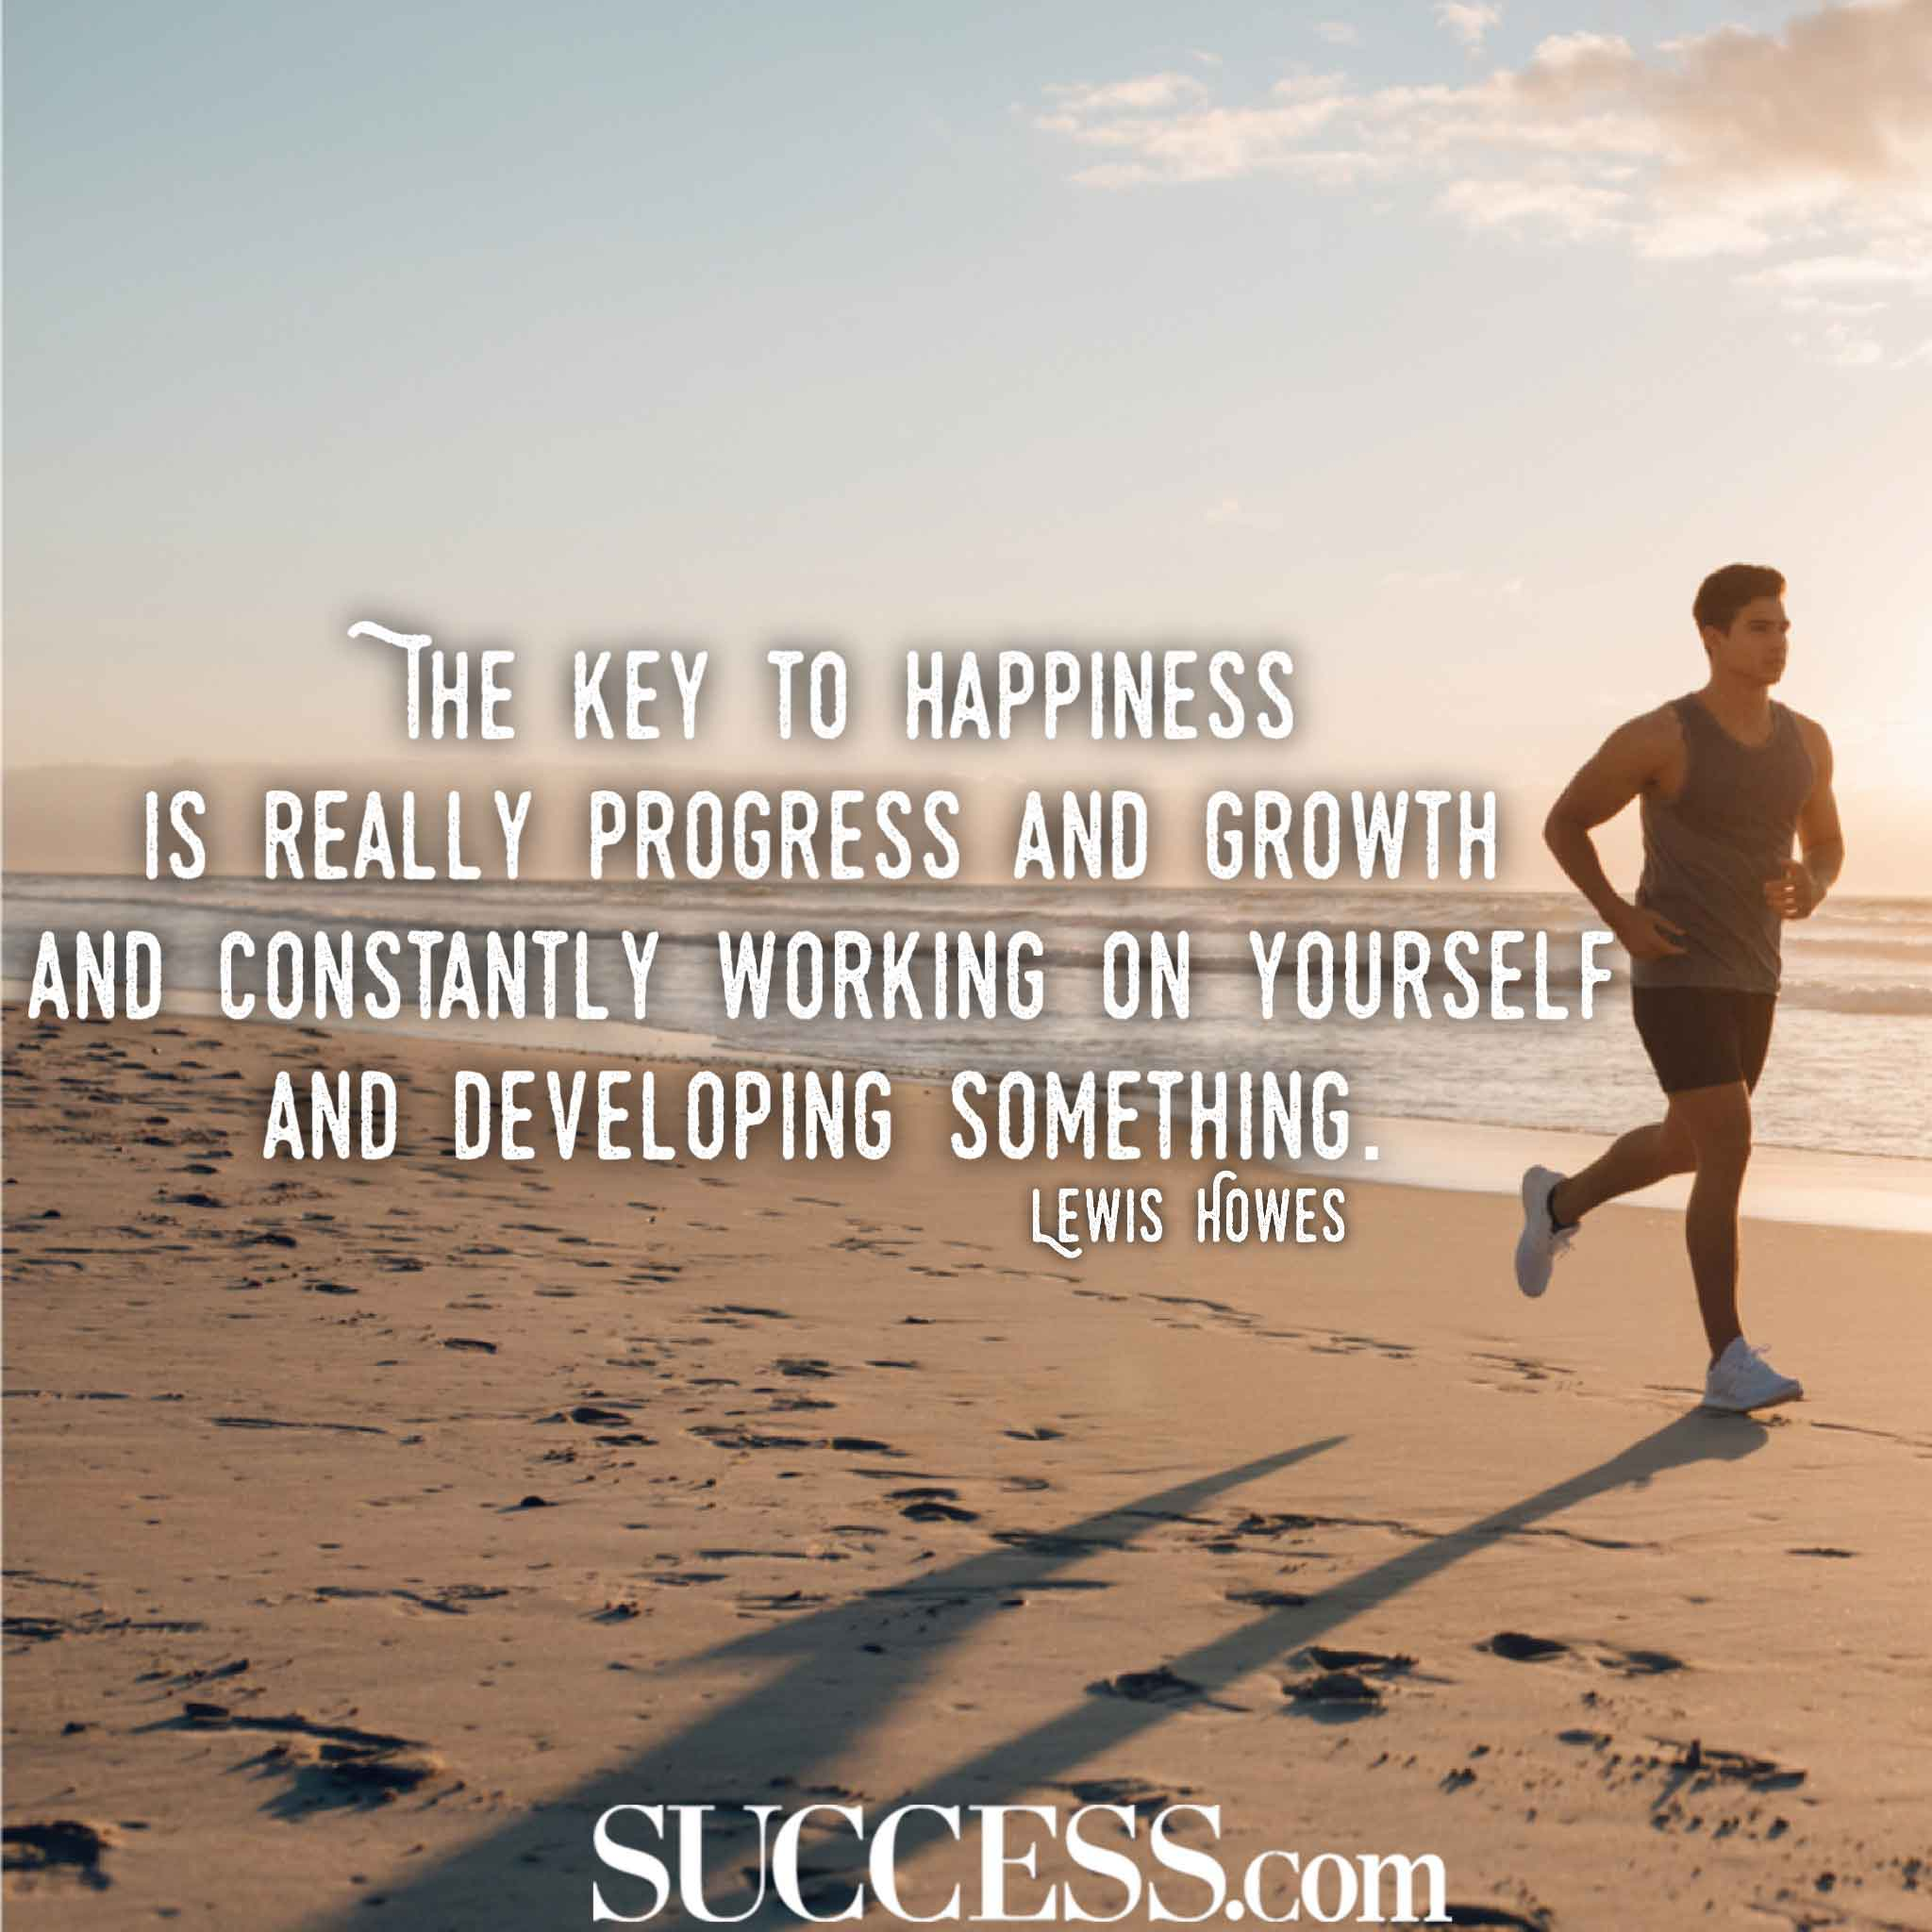 12 Motivational Quotes About Improving Yourself